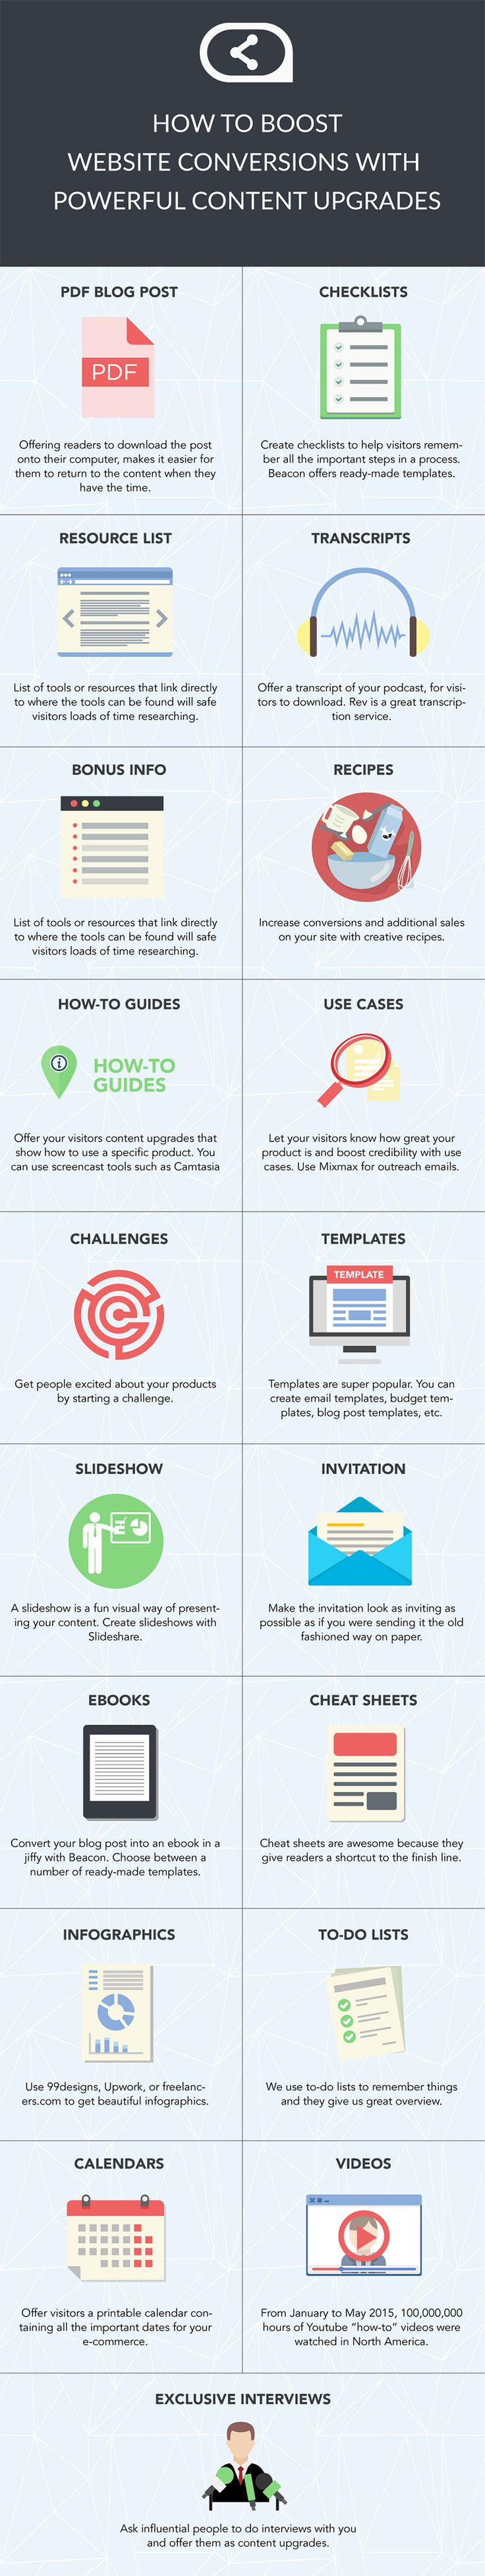 We've talked before, here at The Savvy Solopreneur, about how to build your email list …